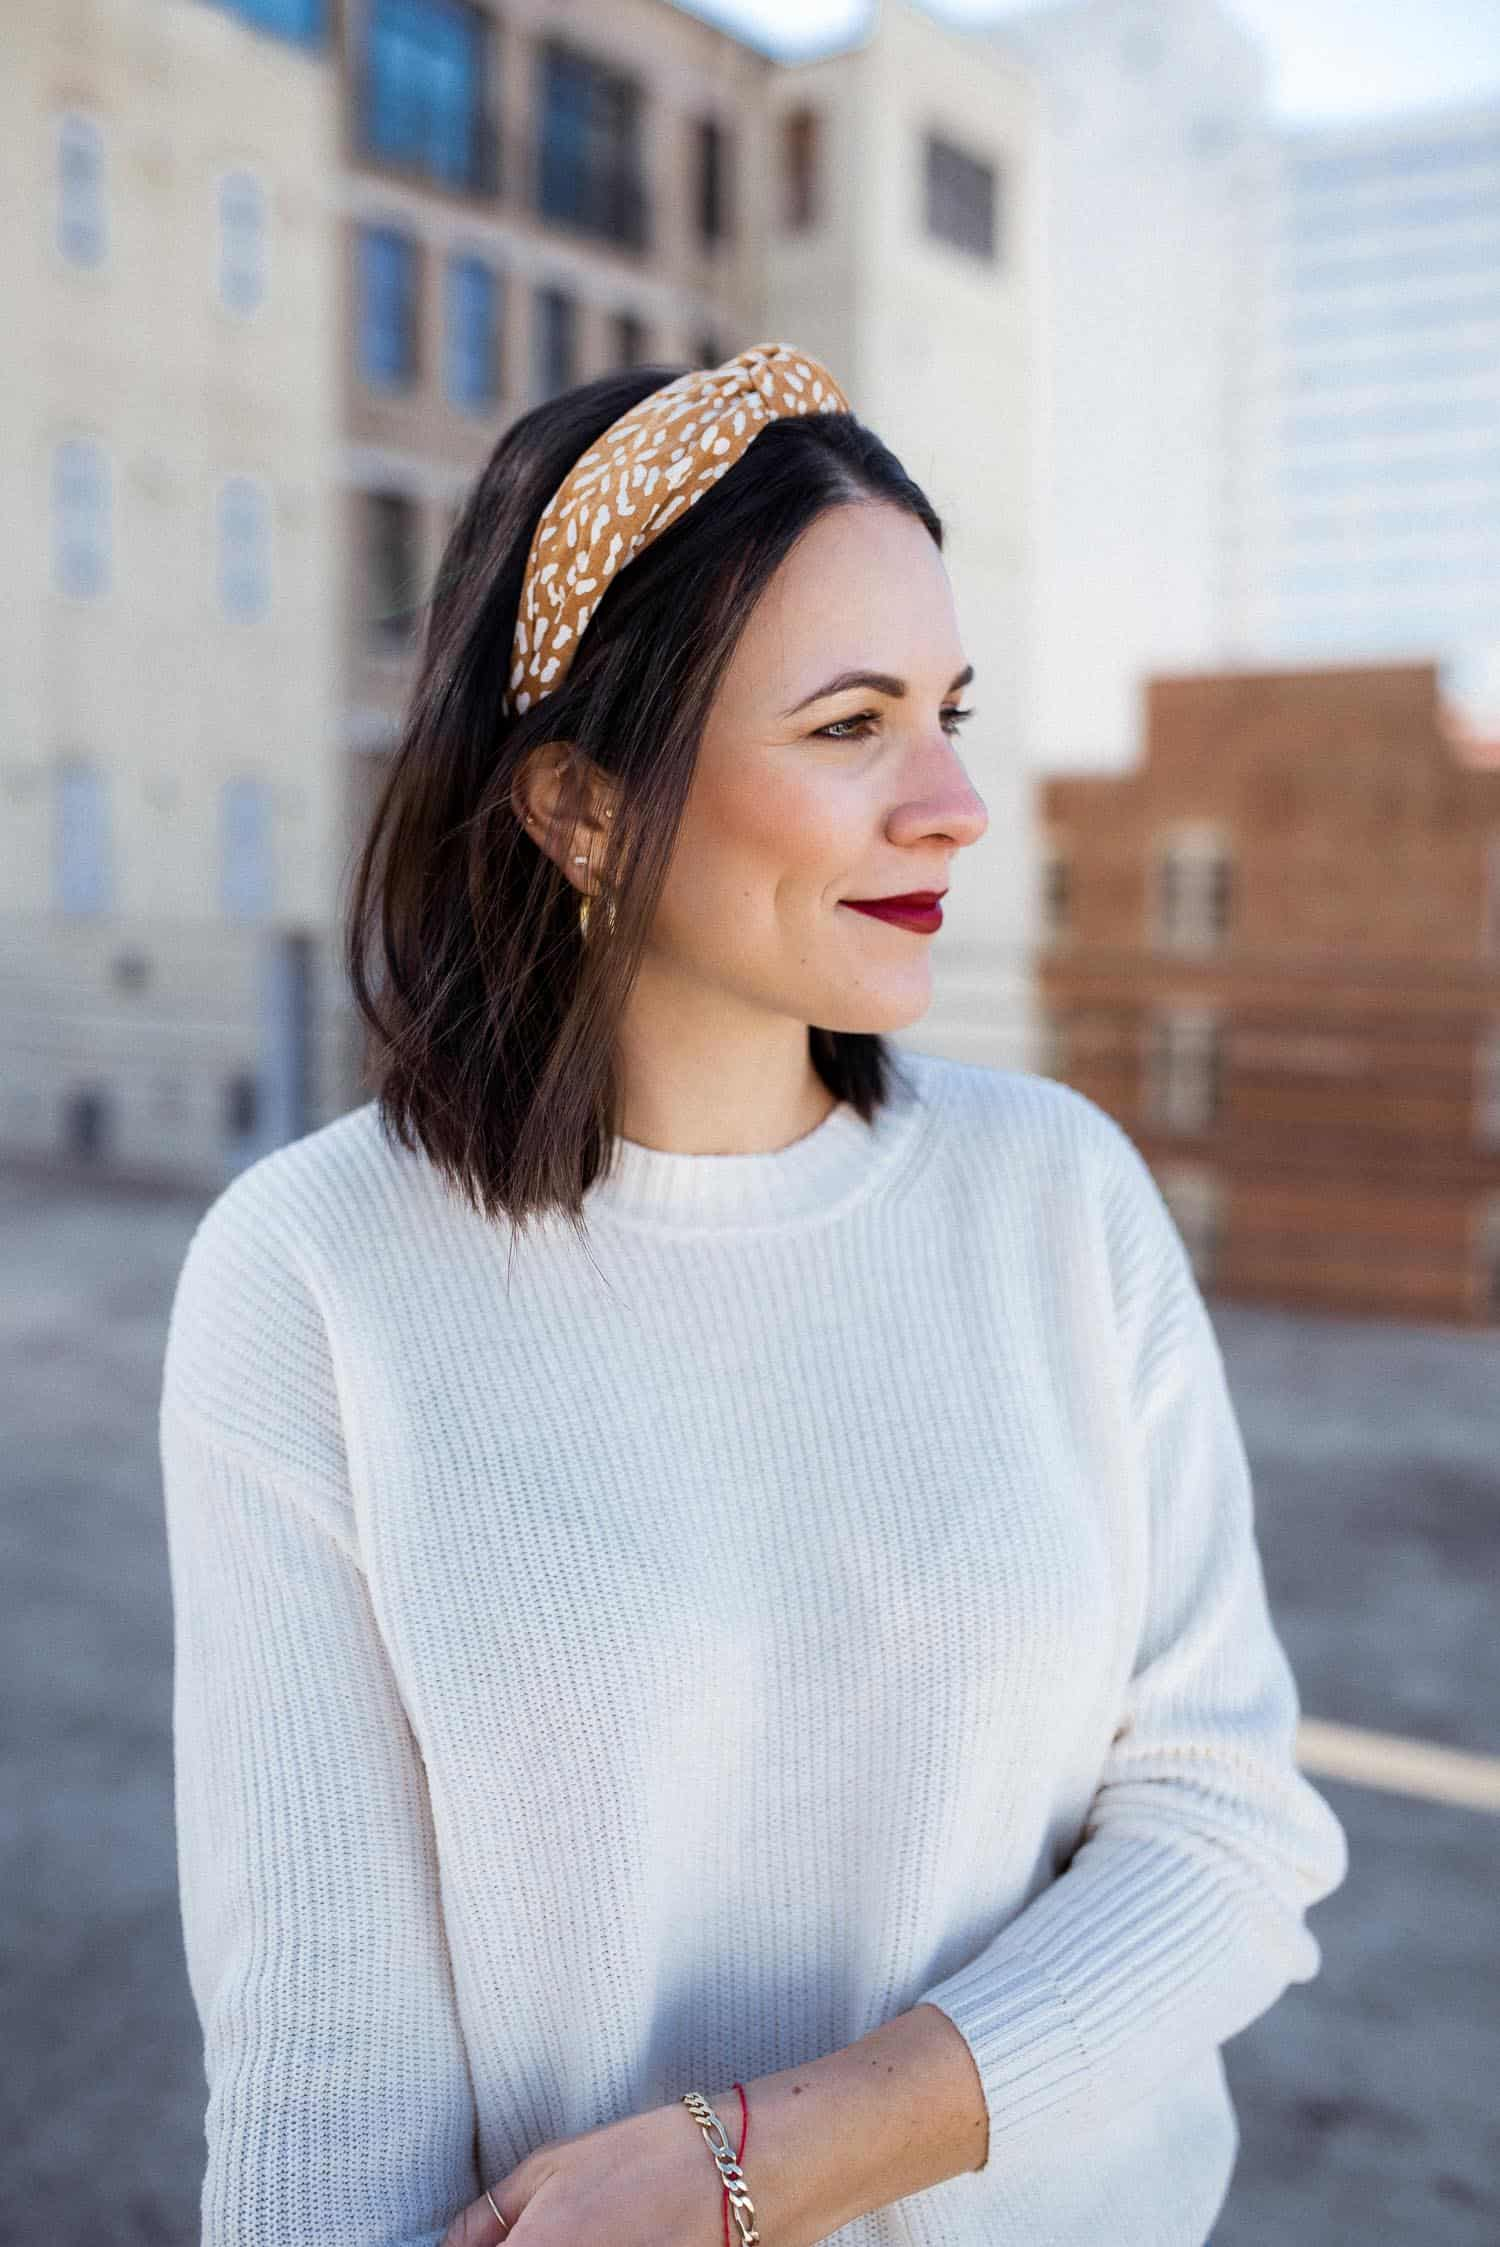 How To Wear Headbands Multiple Ways